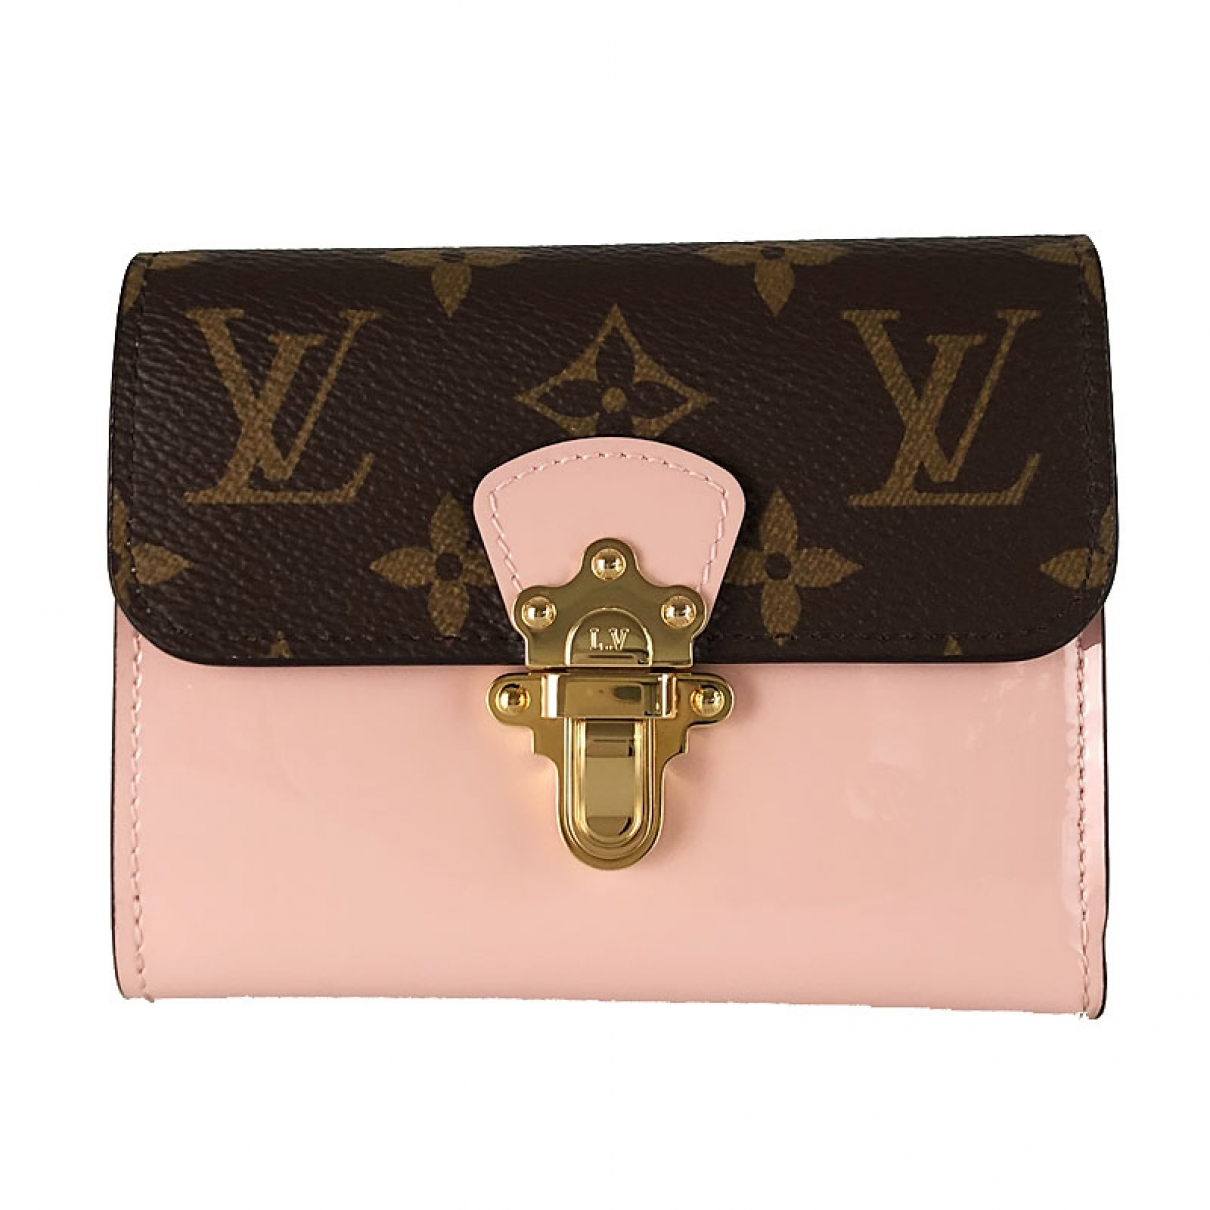 Louis Vuitton \N Pink Leather wallet for Women \N